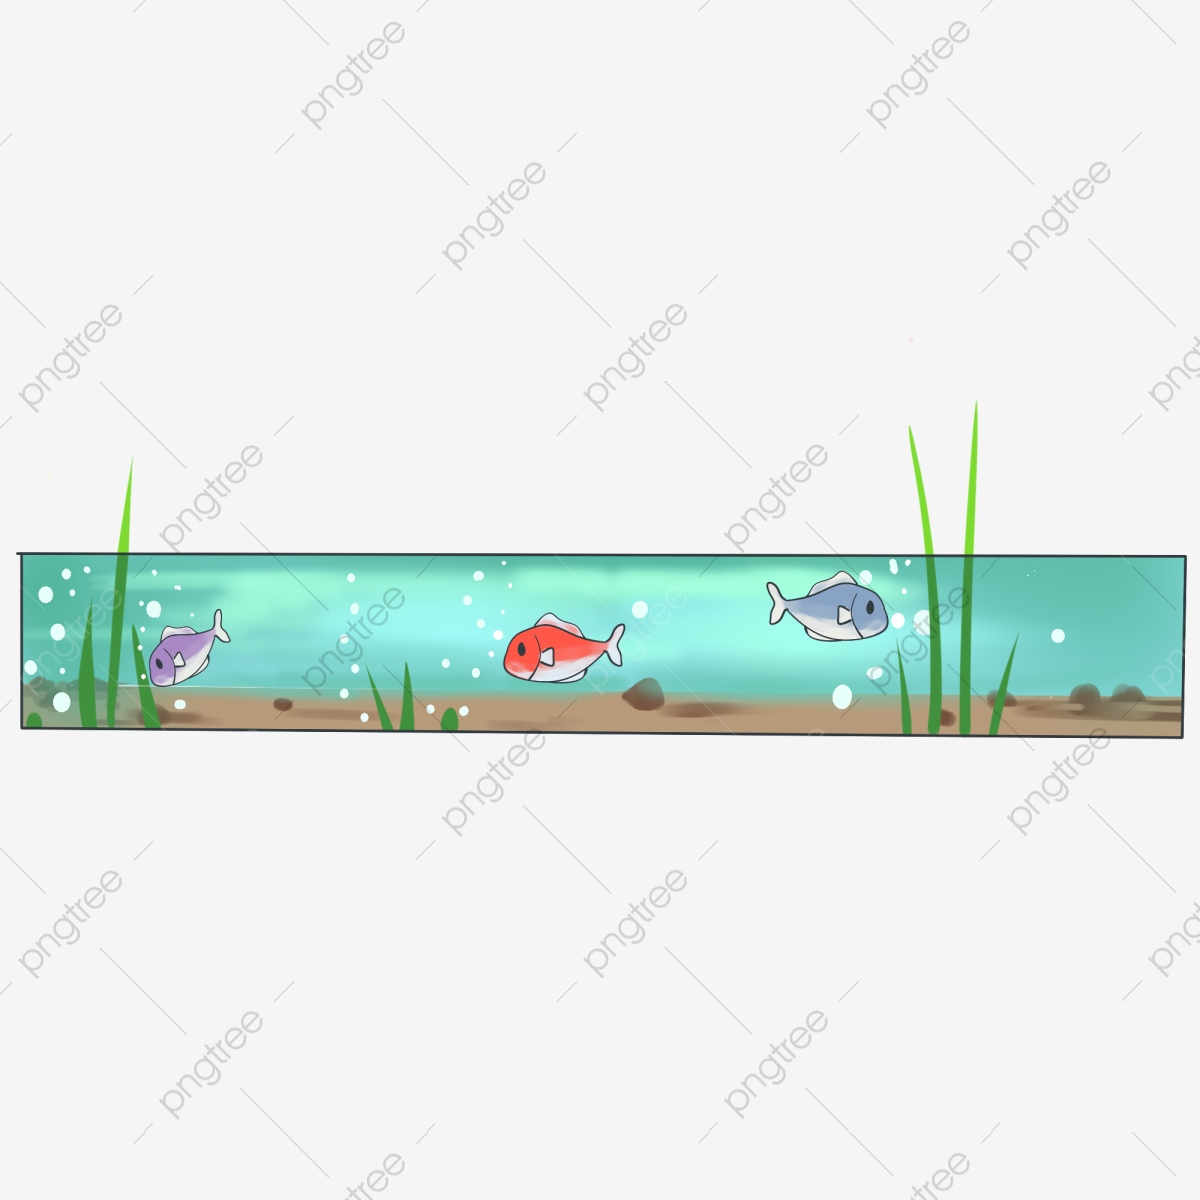 Ducks clipart fish pond game, Ducks fish pond game Transparent FREE for  download on WebStockReview 2020